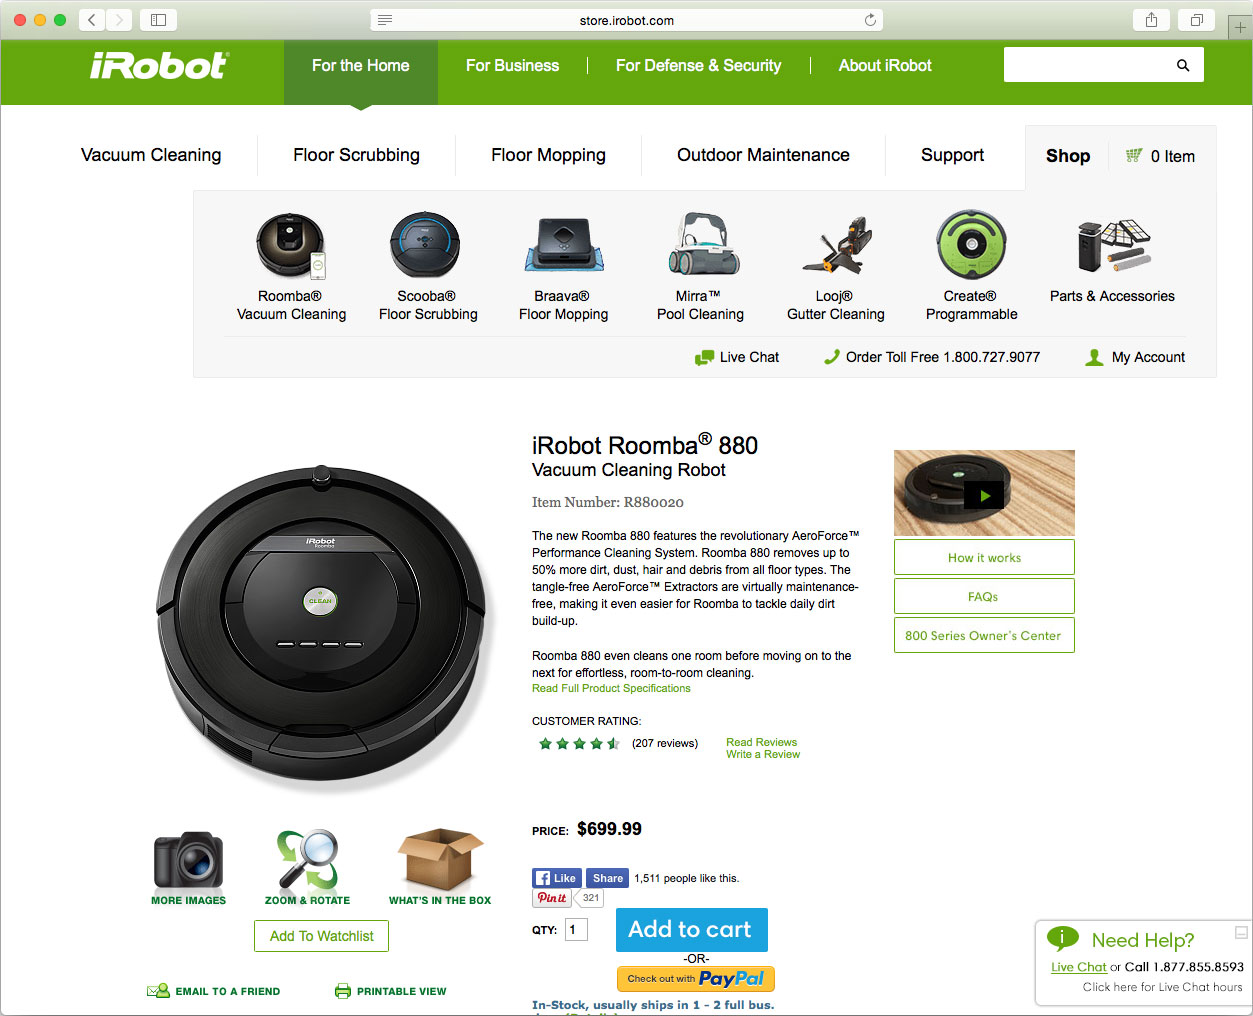 An iRobot product page